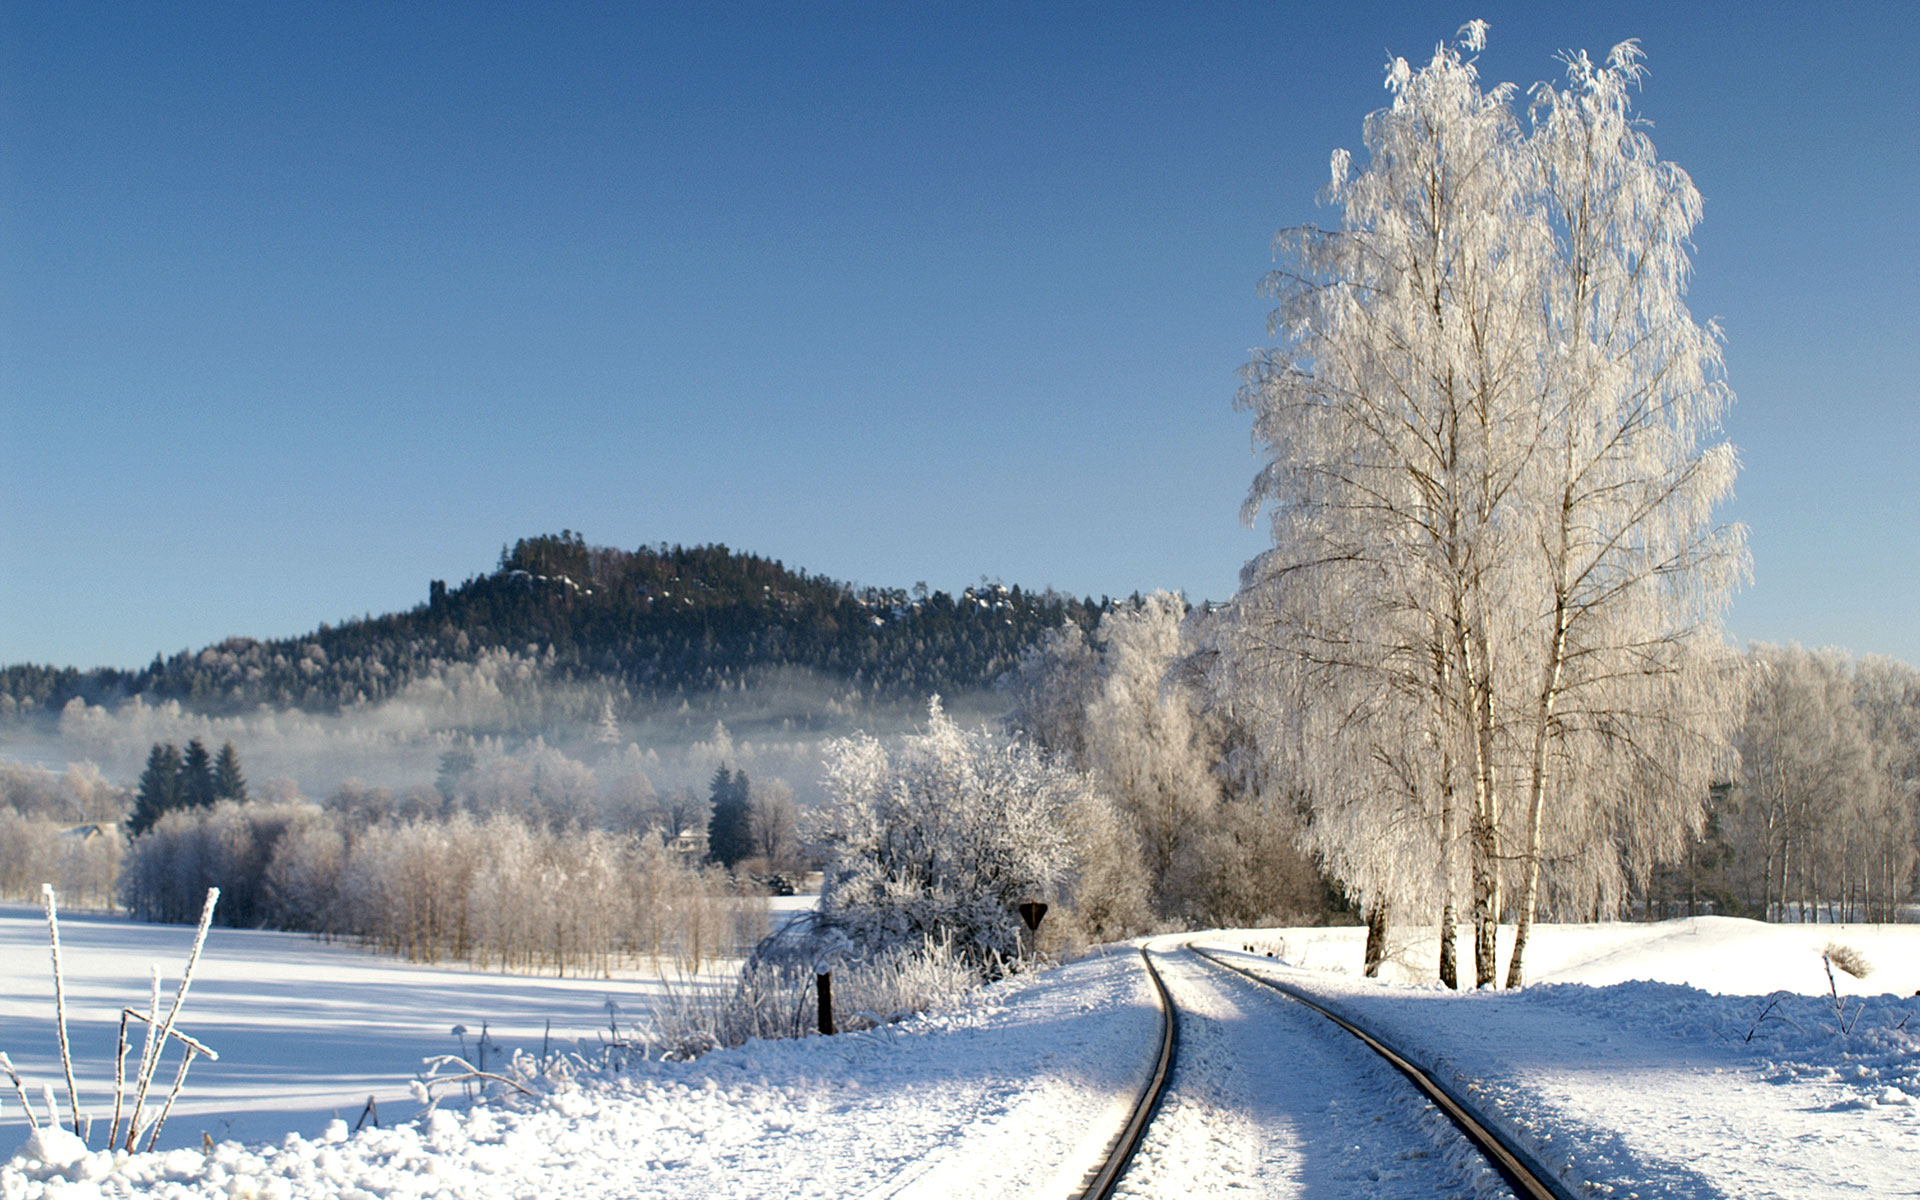 The Czech Republic has an excellent network of rural railways (photo © Tomás Simek / dreamstime.com)